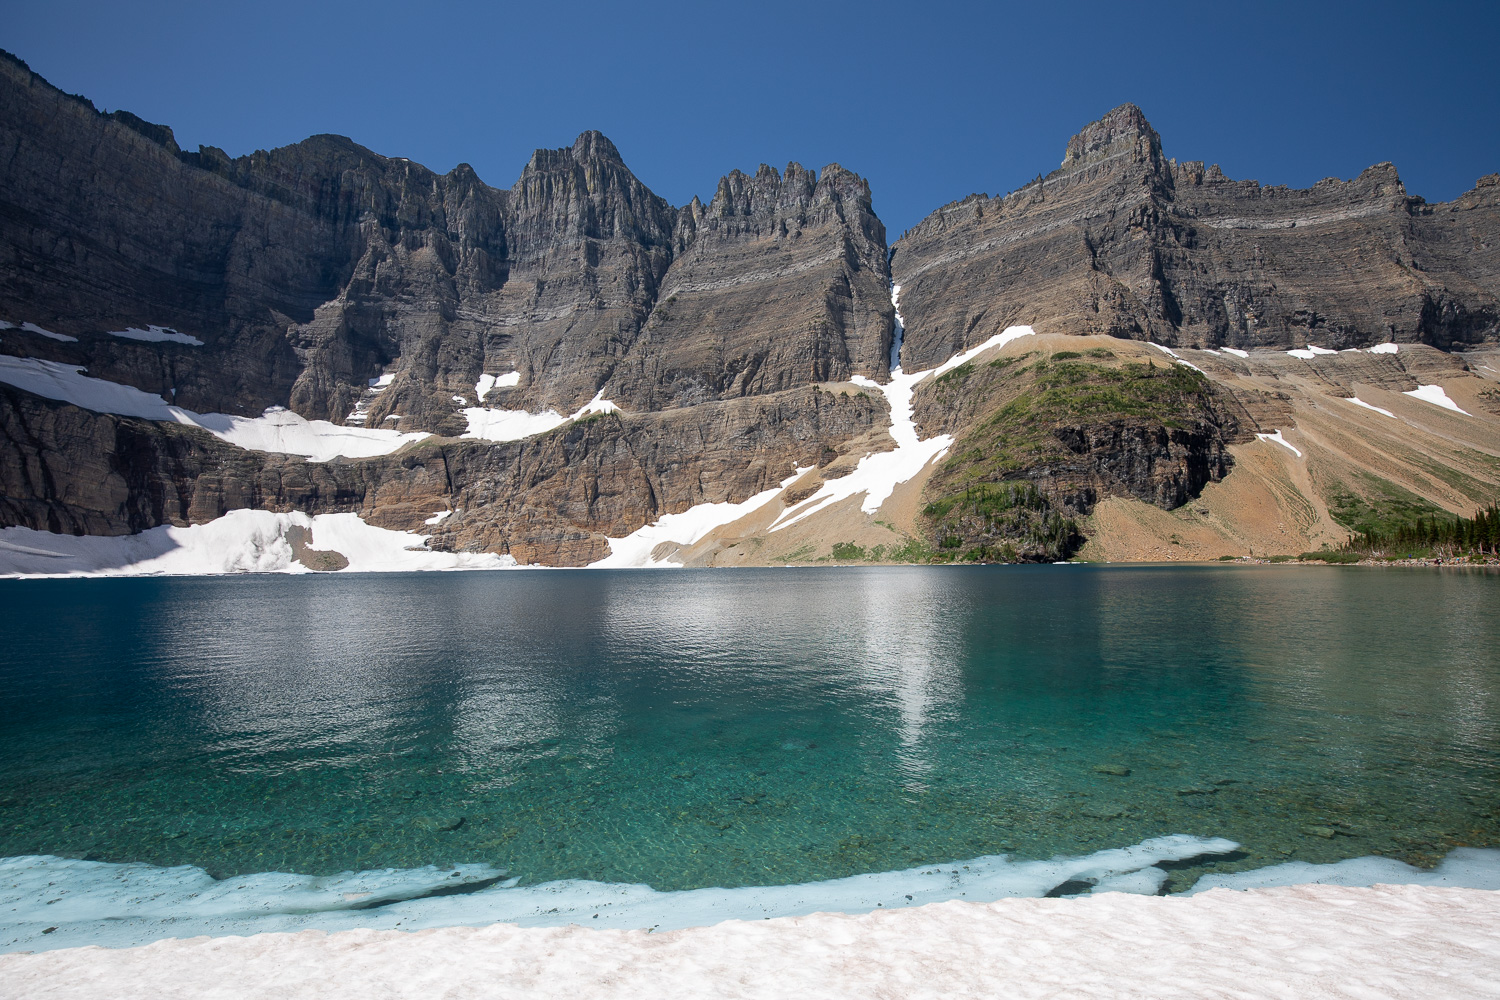 A view of Iceberg Lake from an unmelted snow patch.